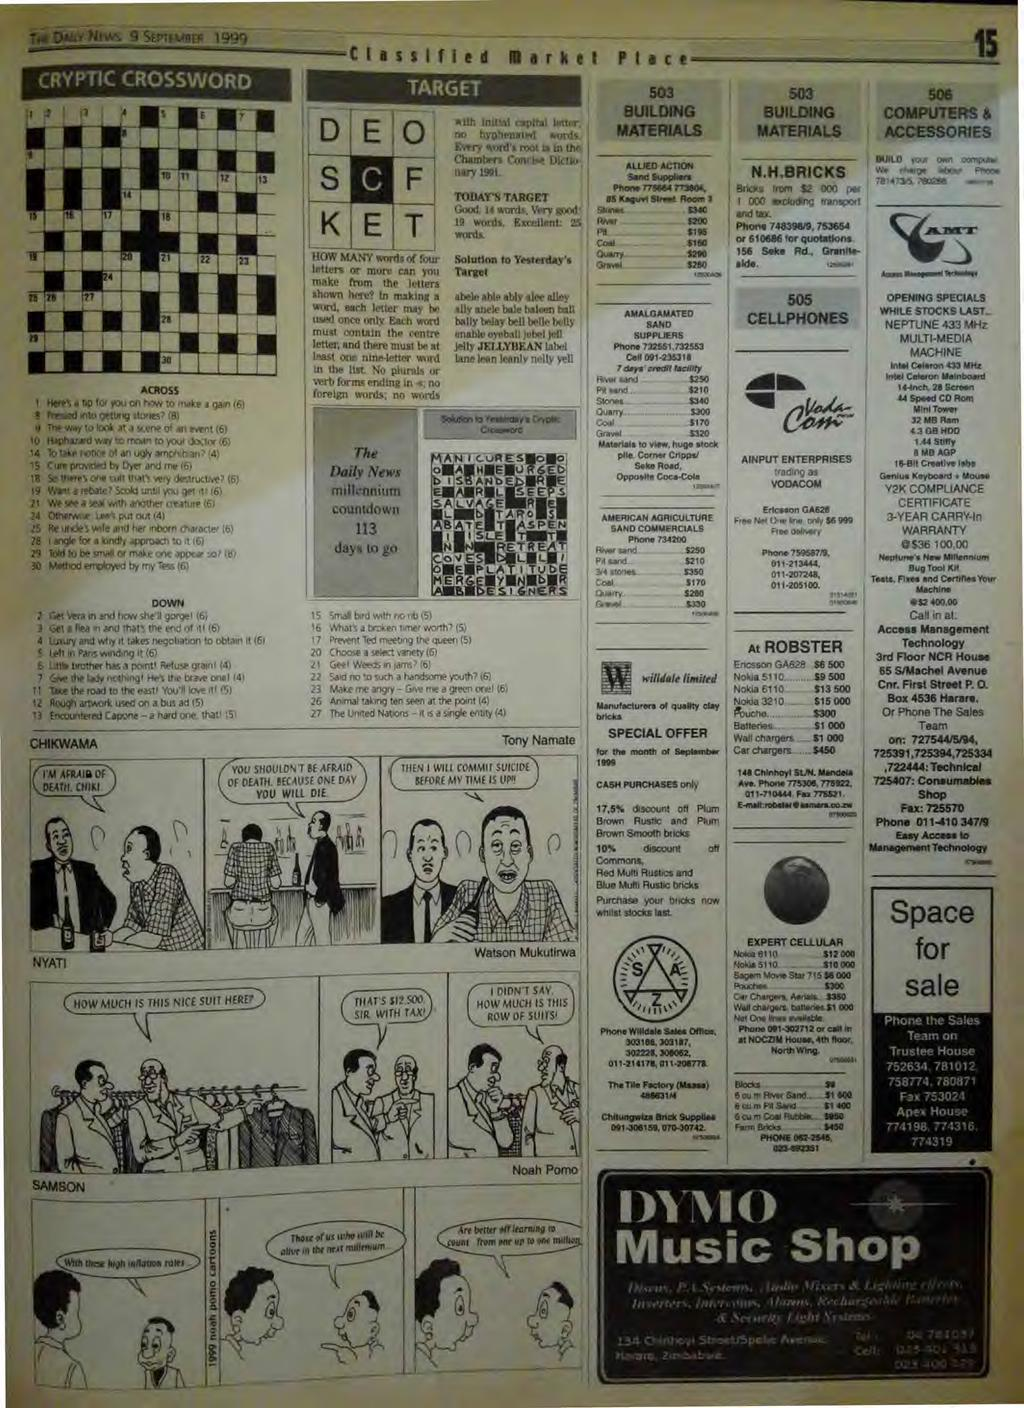 1 NEWs 9 SEPTMER 1999 CRYPTIC CROSSWORD LI n 27 17 ACROSS 1 Here's a tip for you on how to make a gain 16) 8 Pressed into getting slams?